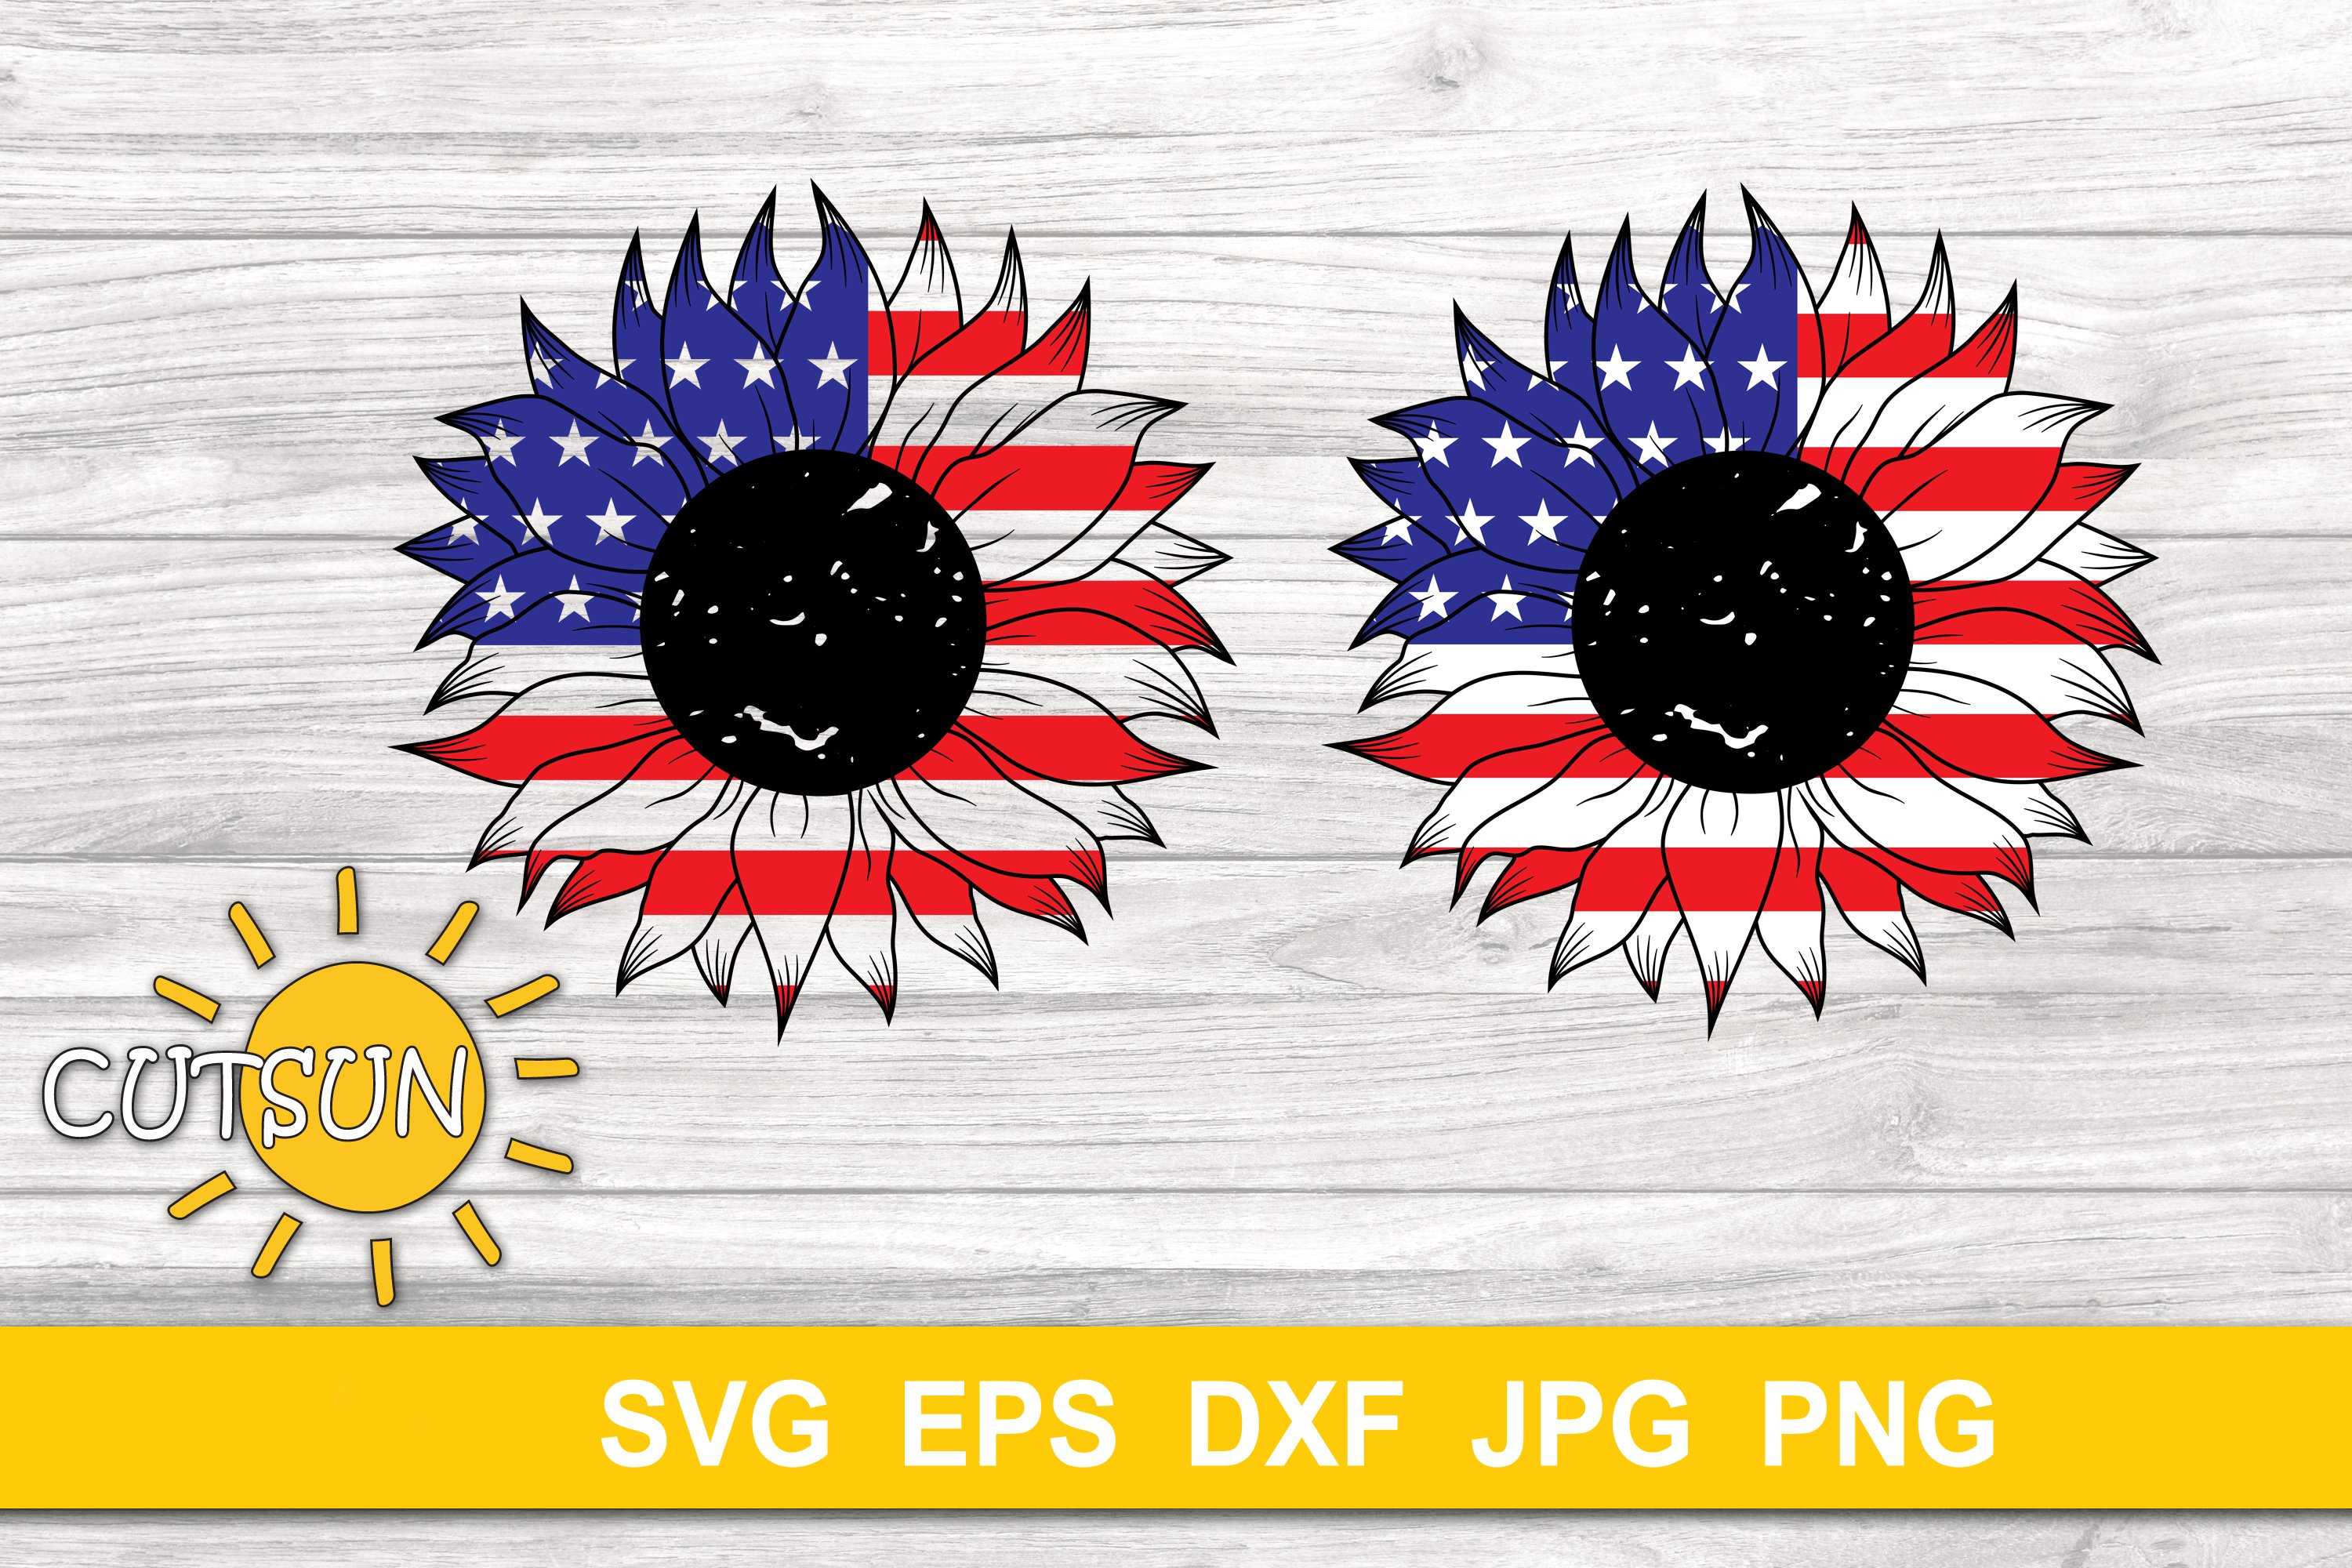 USA Sunflower SVG cut file example image 4